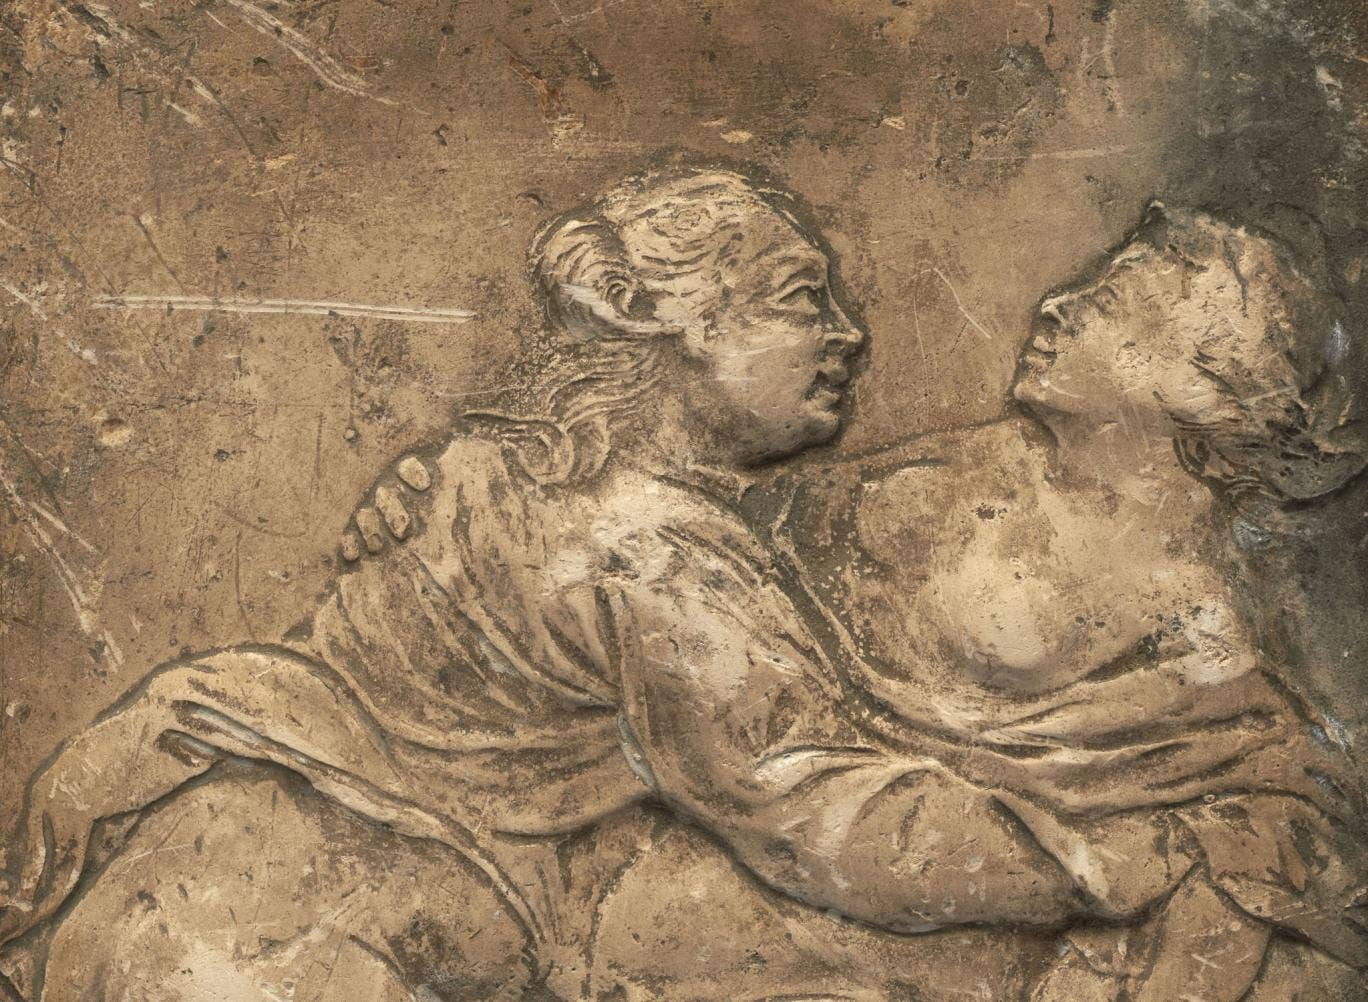 An 18th century erotic relief tile due to go on show at the Museum of London for Valentine's Day